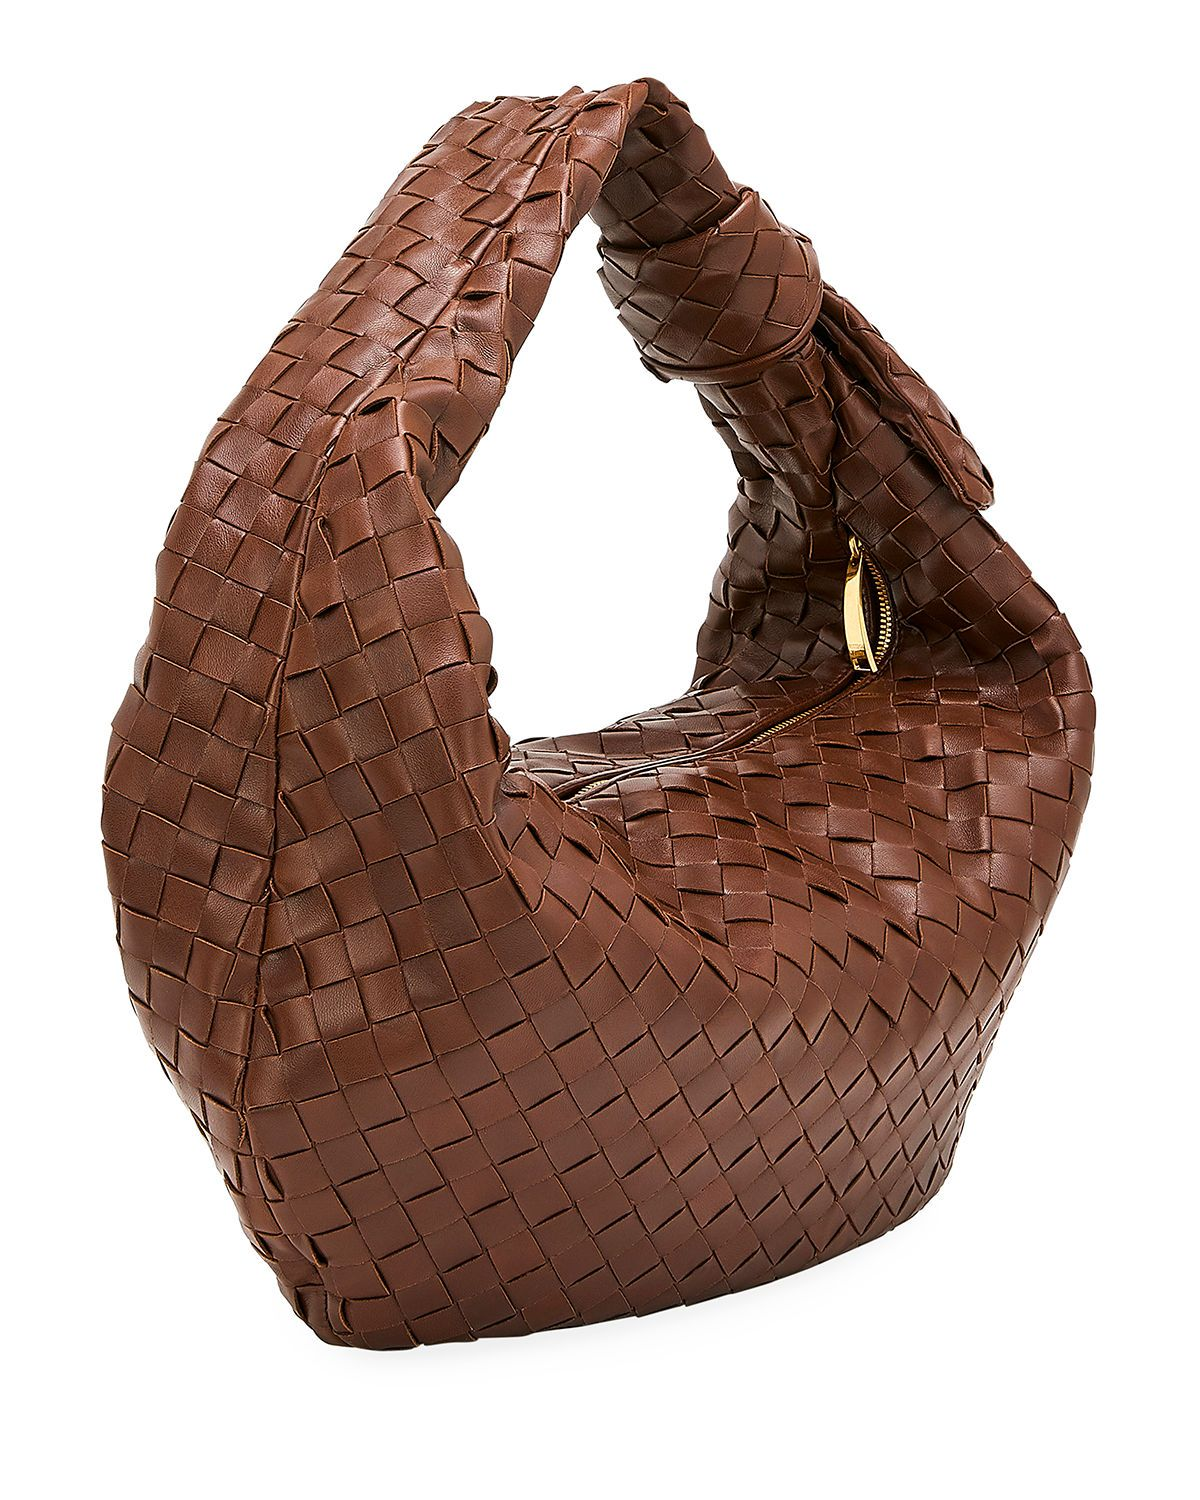 BOTTEGA VENETA JODIE NAPA INTRECCIATO SMALL HOBO BAG bags bags